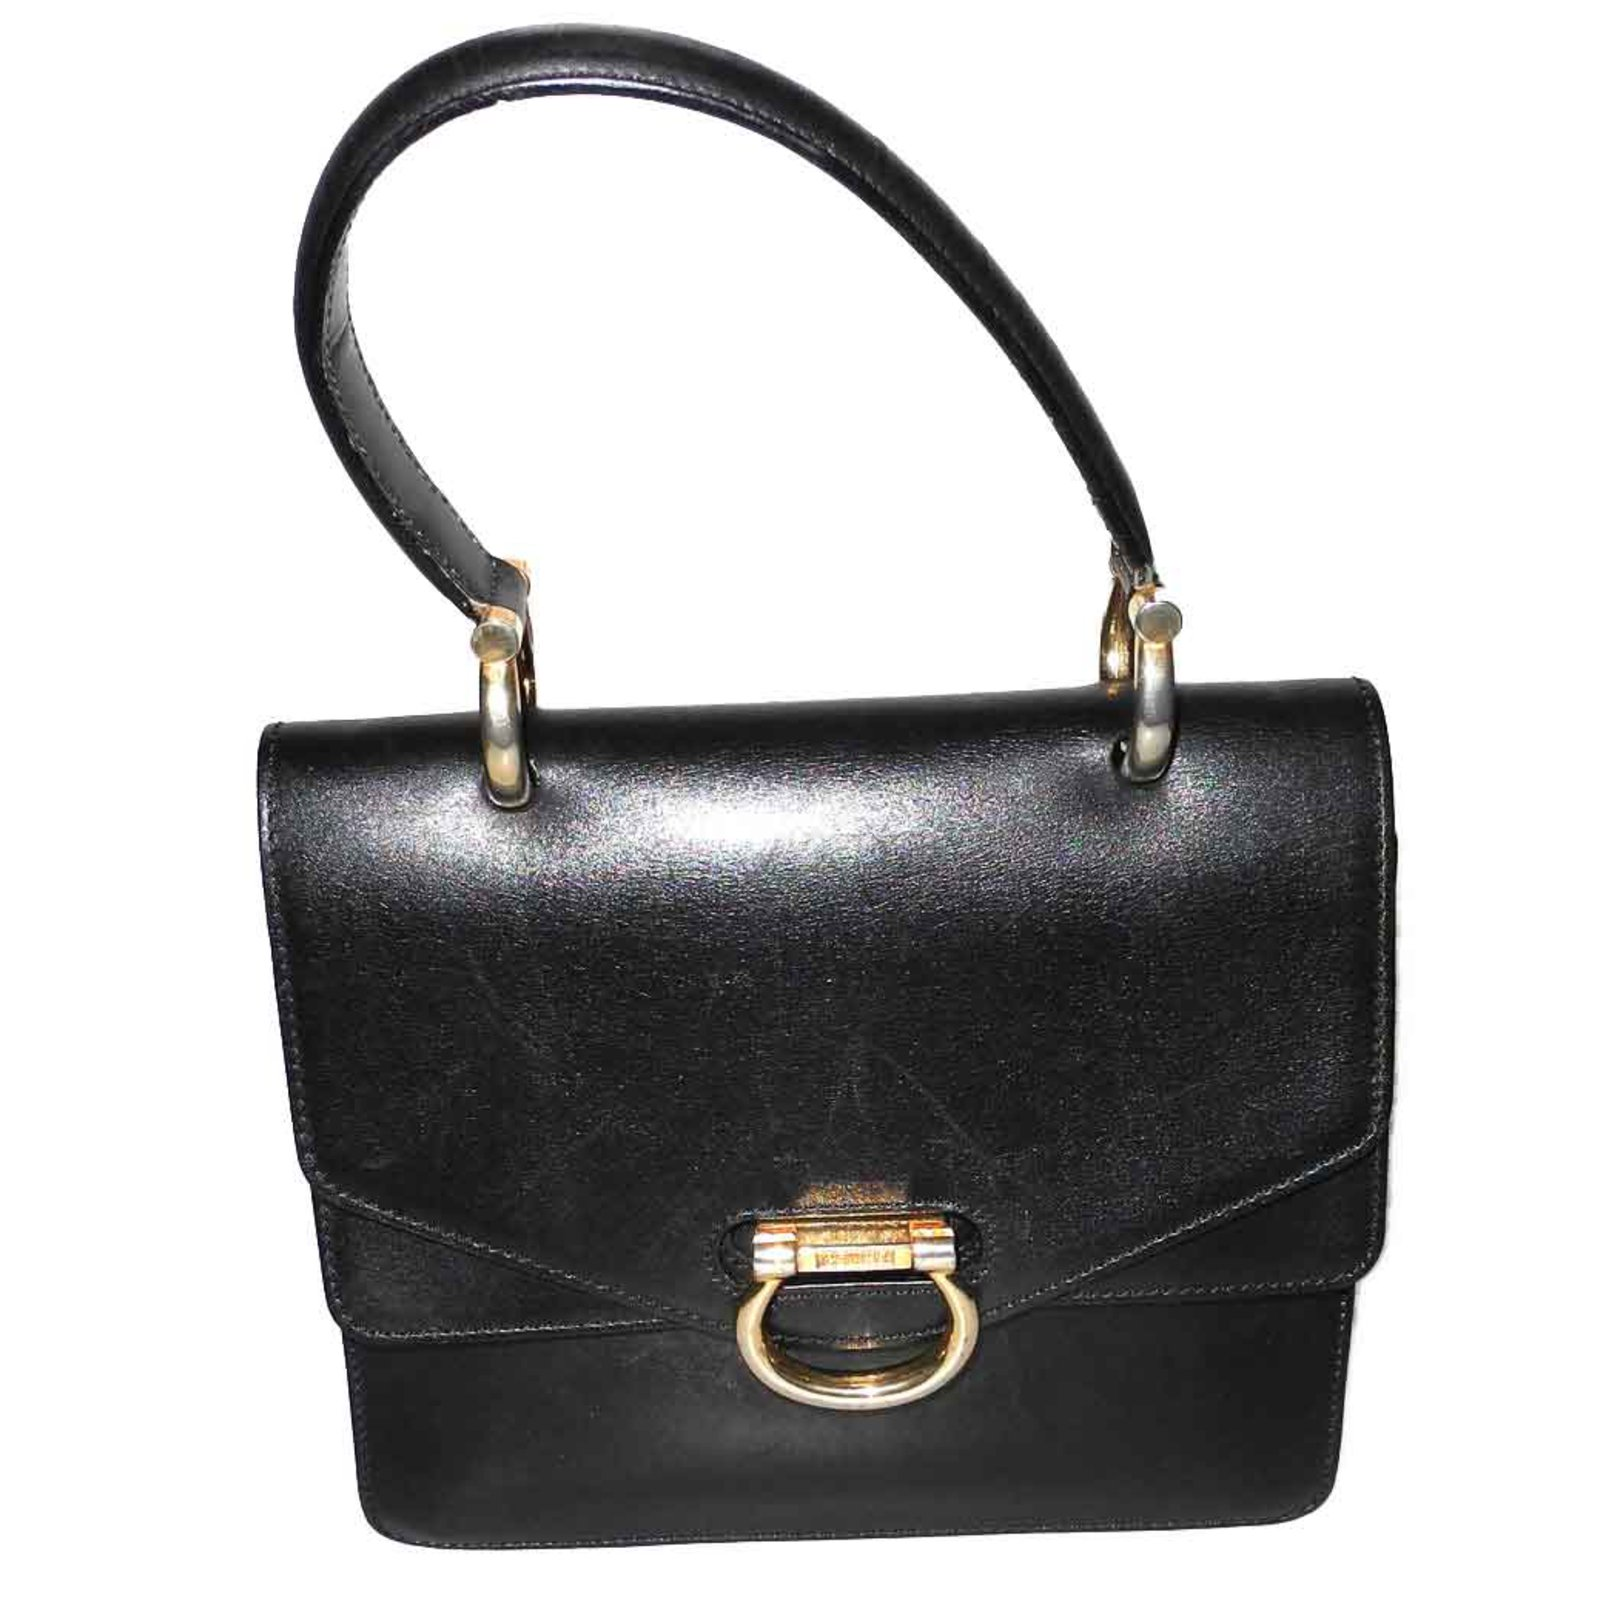 7ece51966498 Céline black vintage leather bag Handbags Leather Black ref.93235 ...